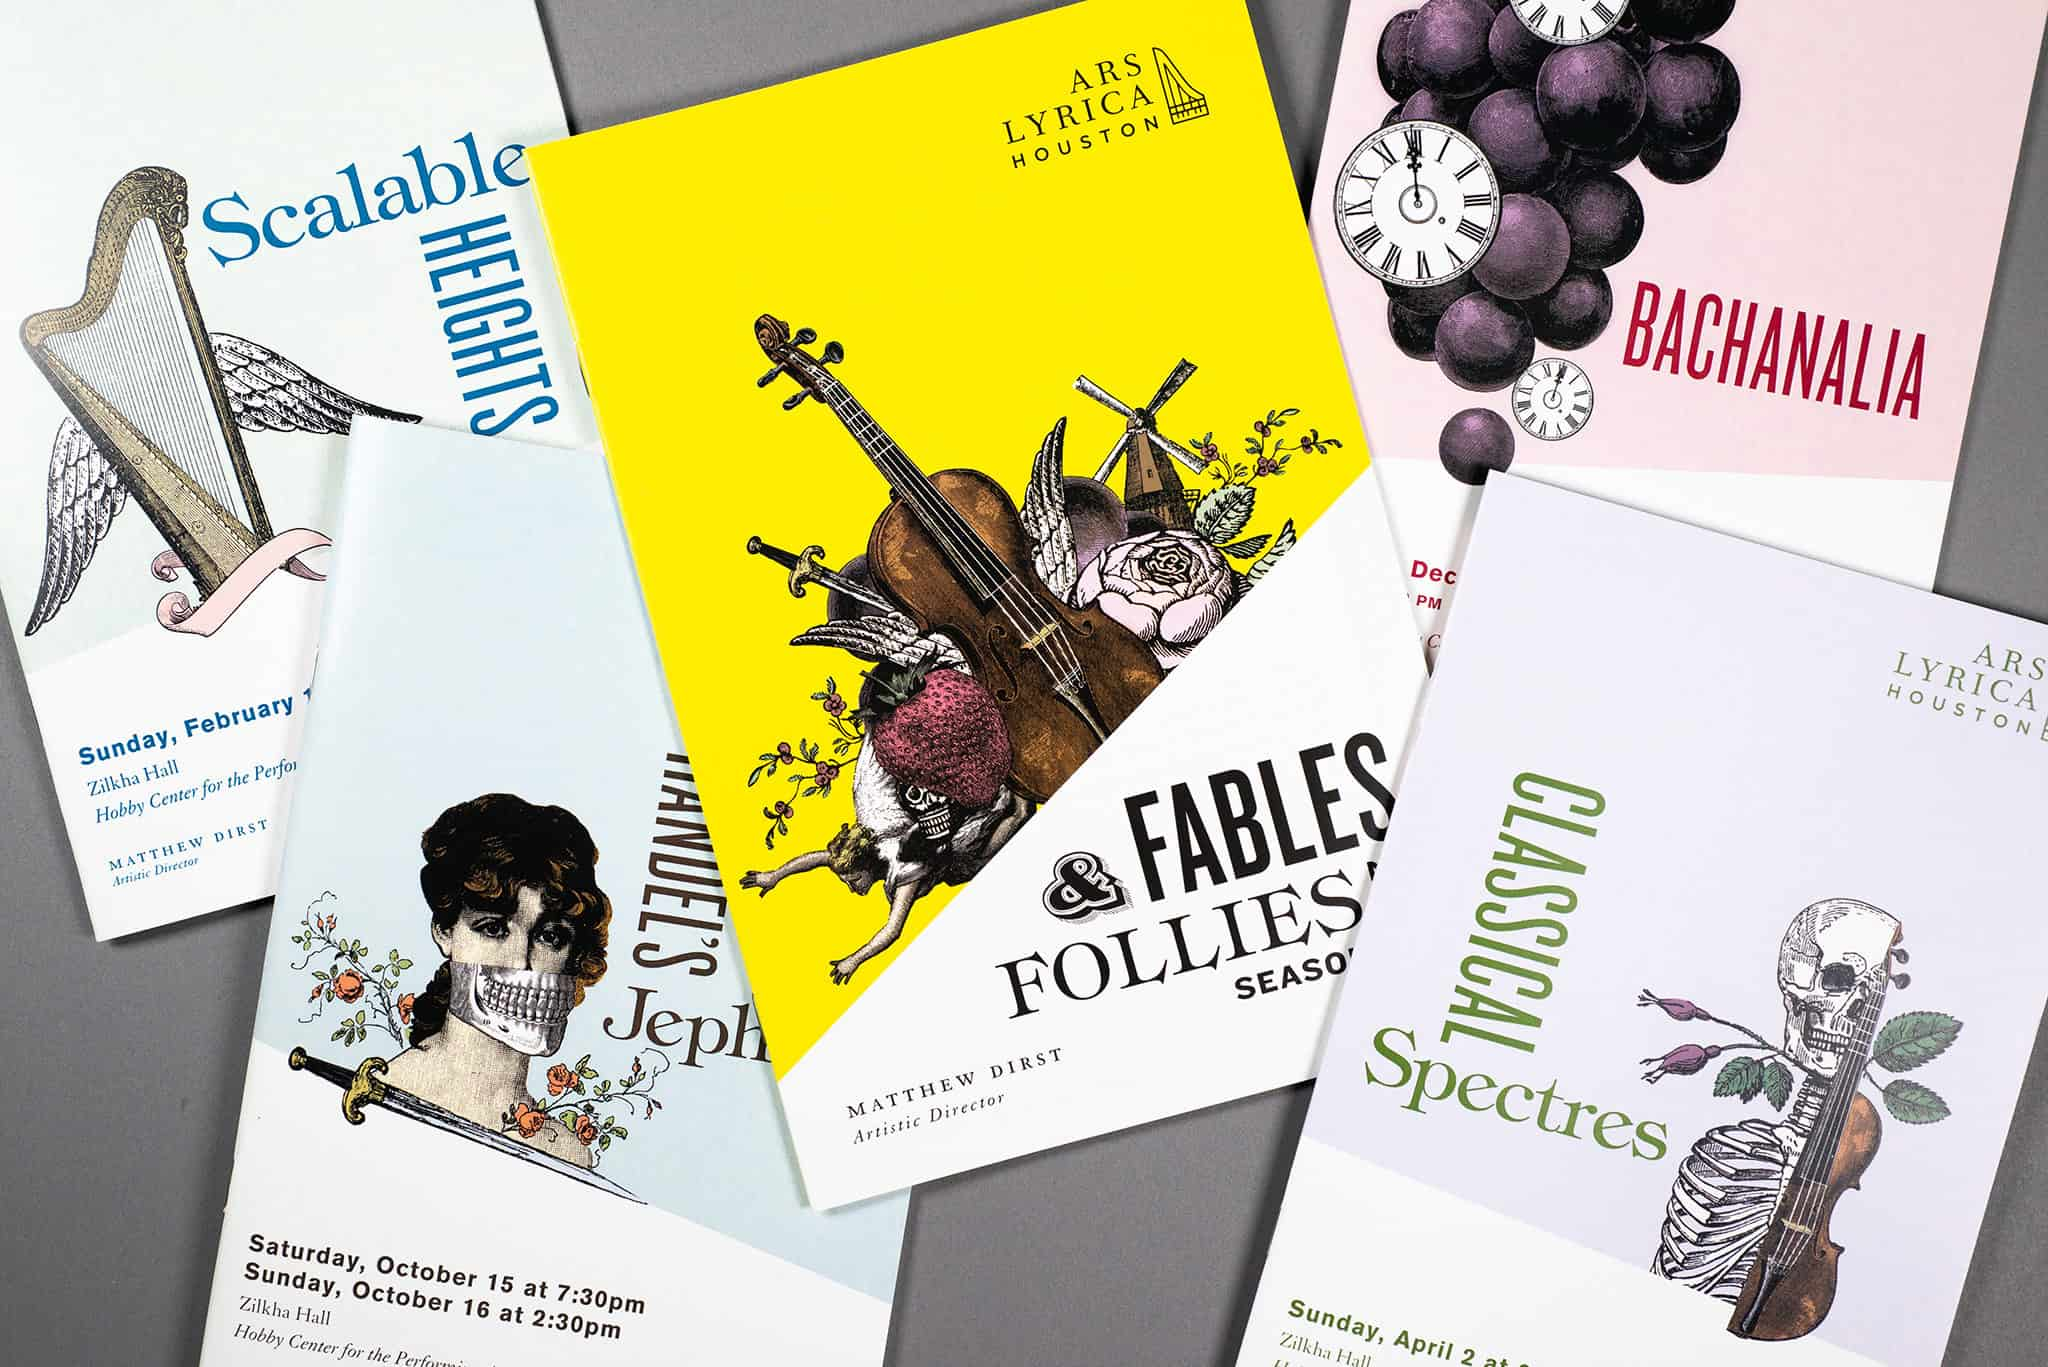 Fables & Follies season covers for Ars Lyrica Houston | Designed by Field of Study: A branding and graphic design consultancy | Houston TX | Jennifer Blanco & John Earles